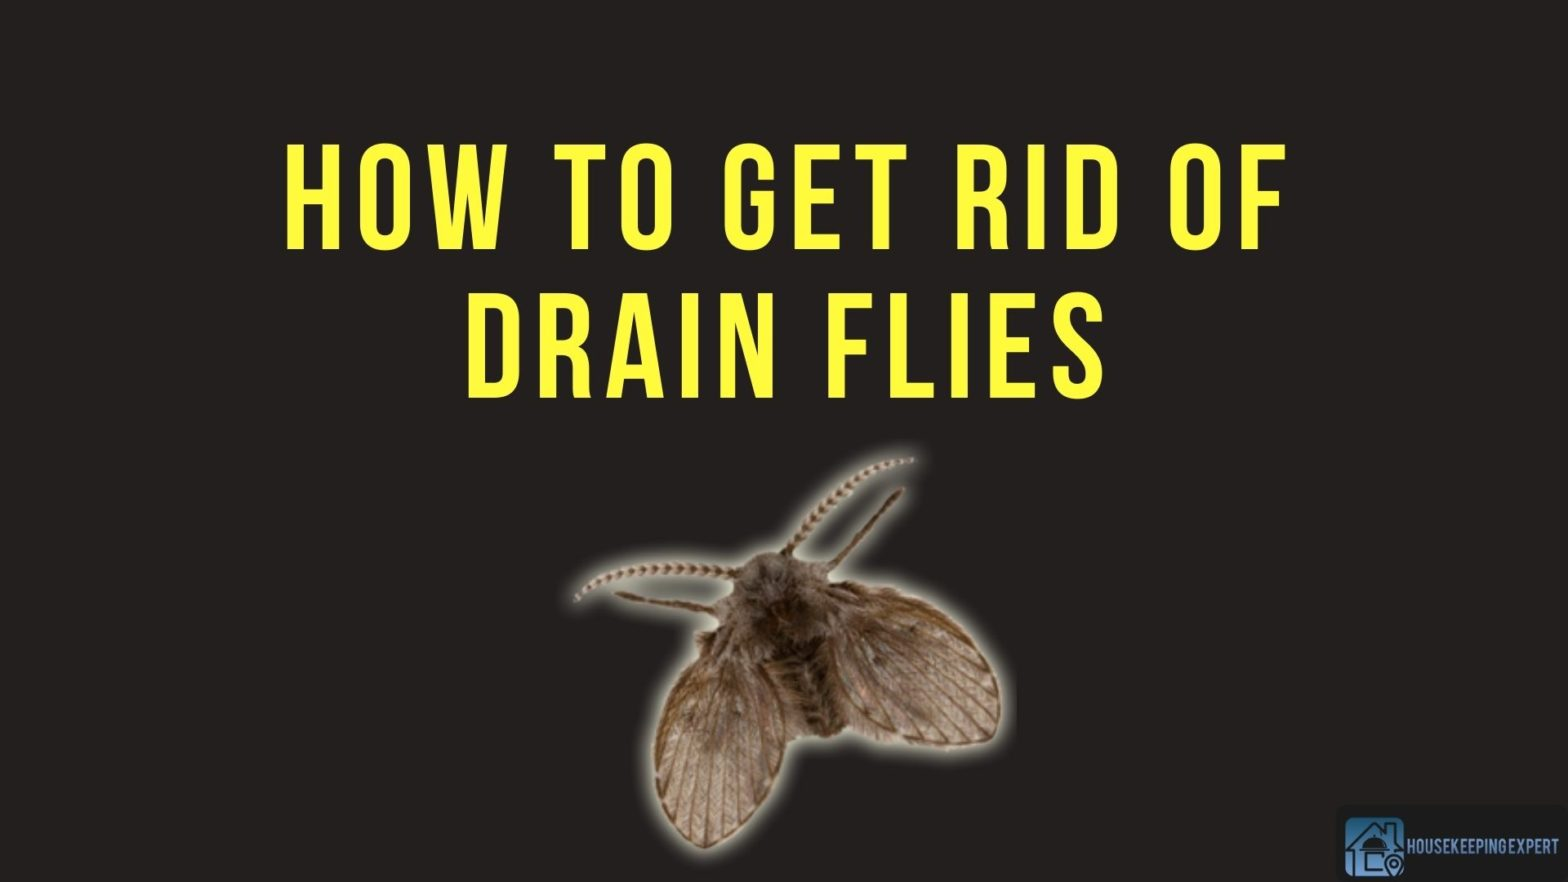 How To Get Rid Of Drain Flies